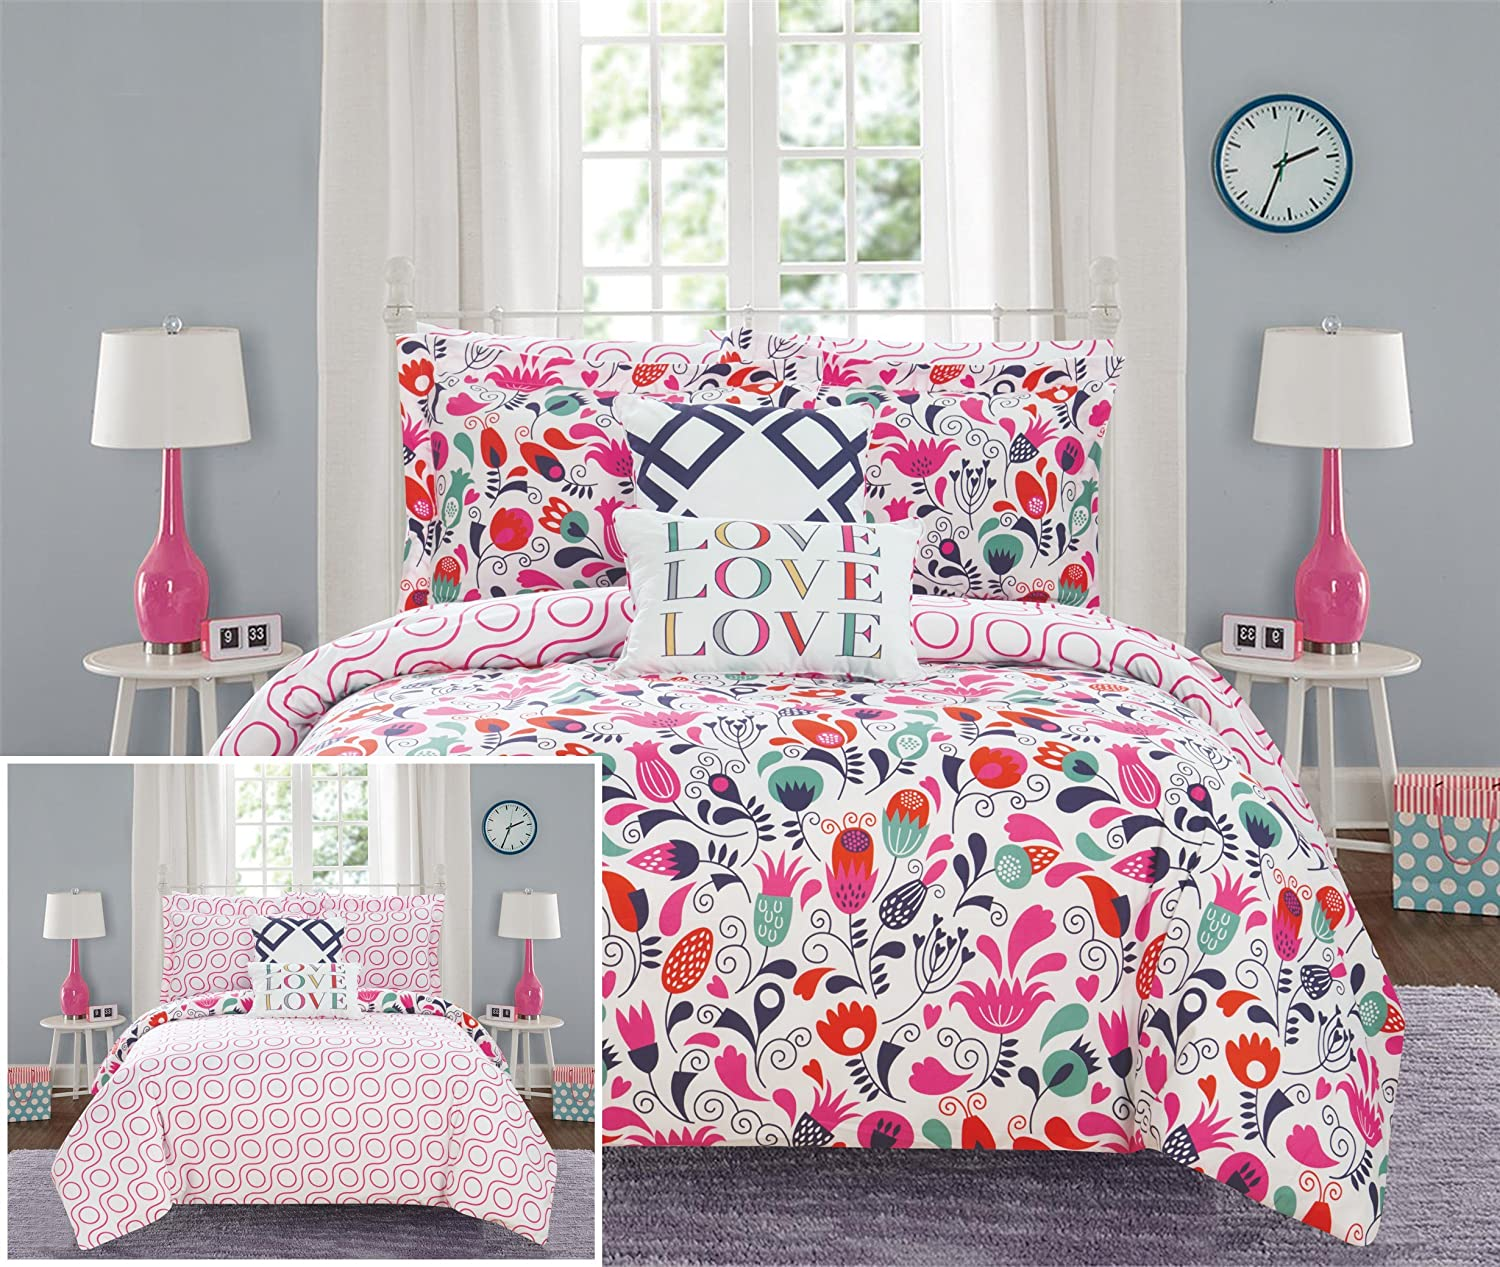 Chic Home Tulip 9 Piece Reversible Comforter Colorful Floral Print Design Bed in a Bag-Sheet Set Decorative Pillows Shams Included Size, Full, Pink